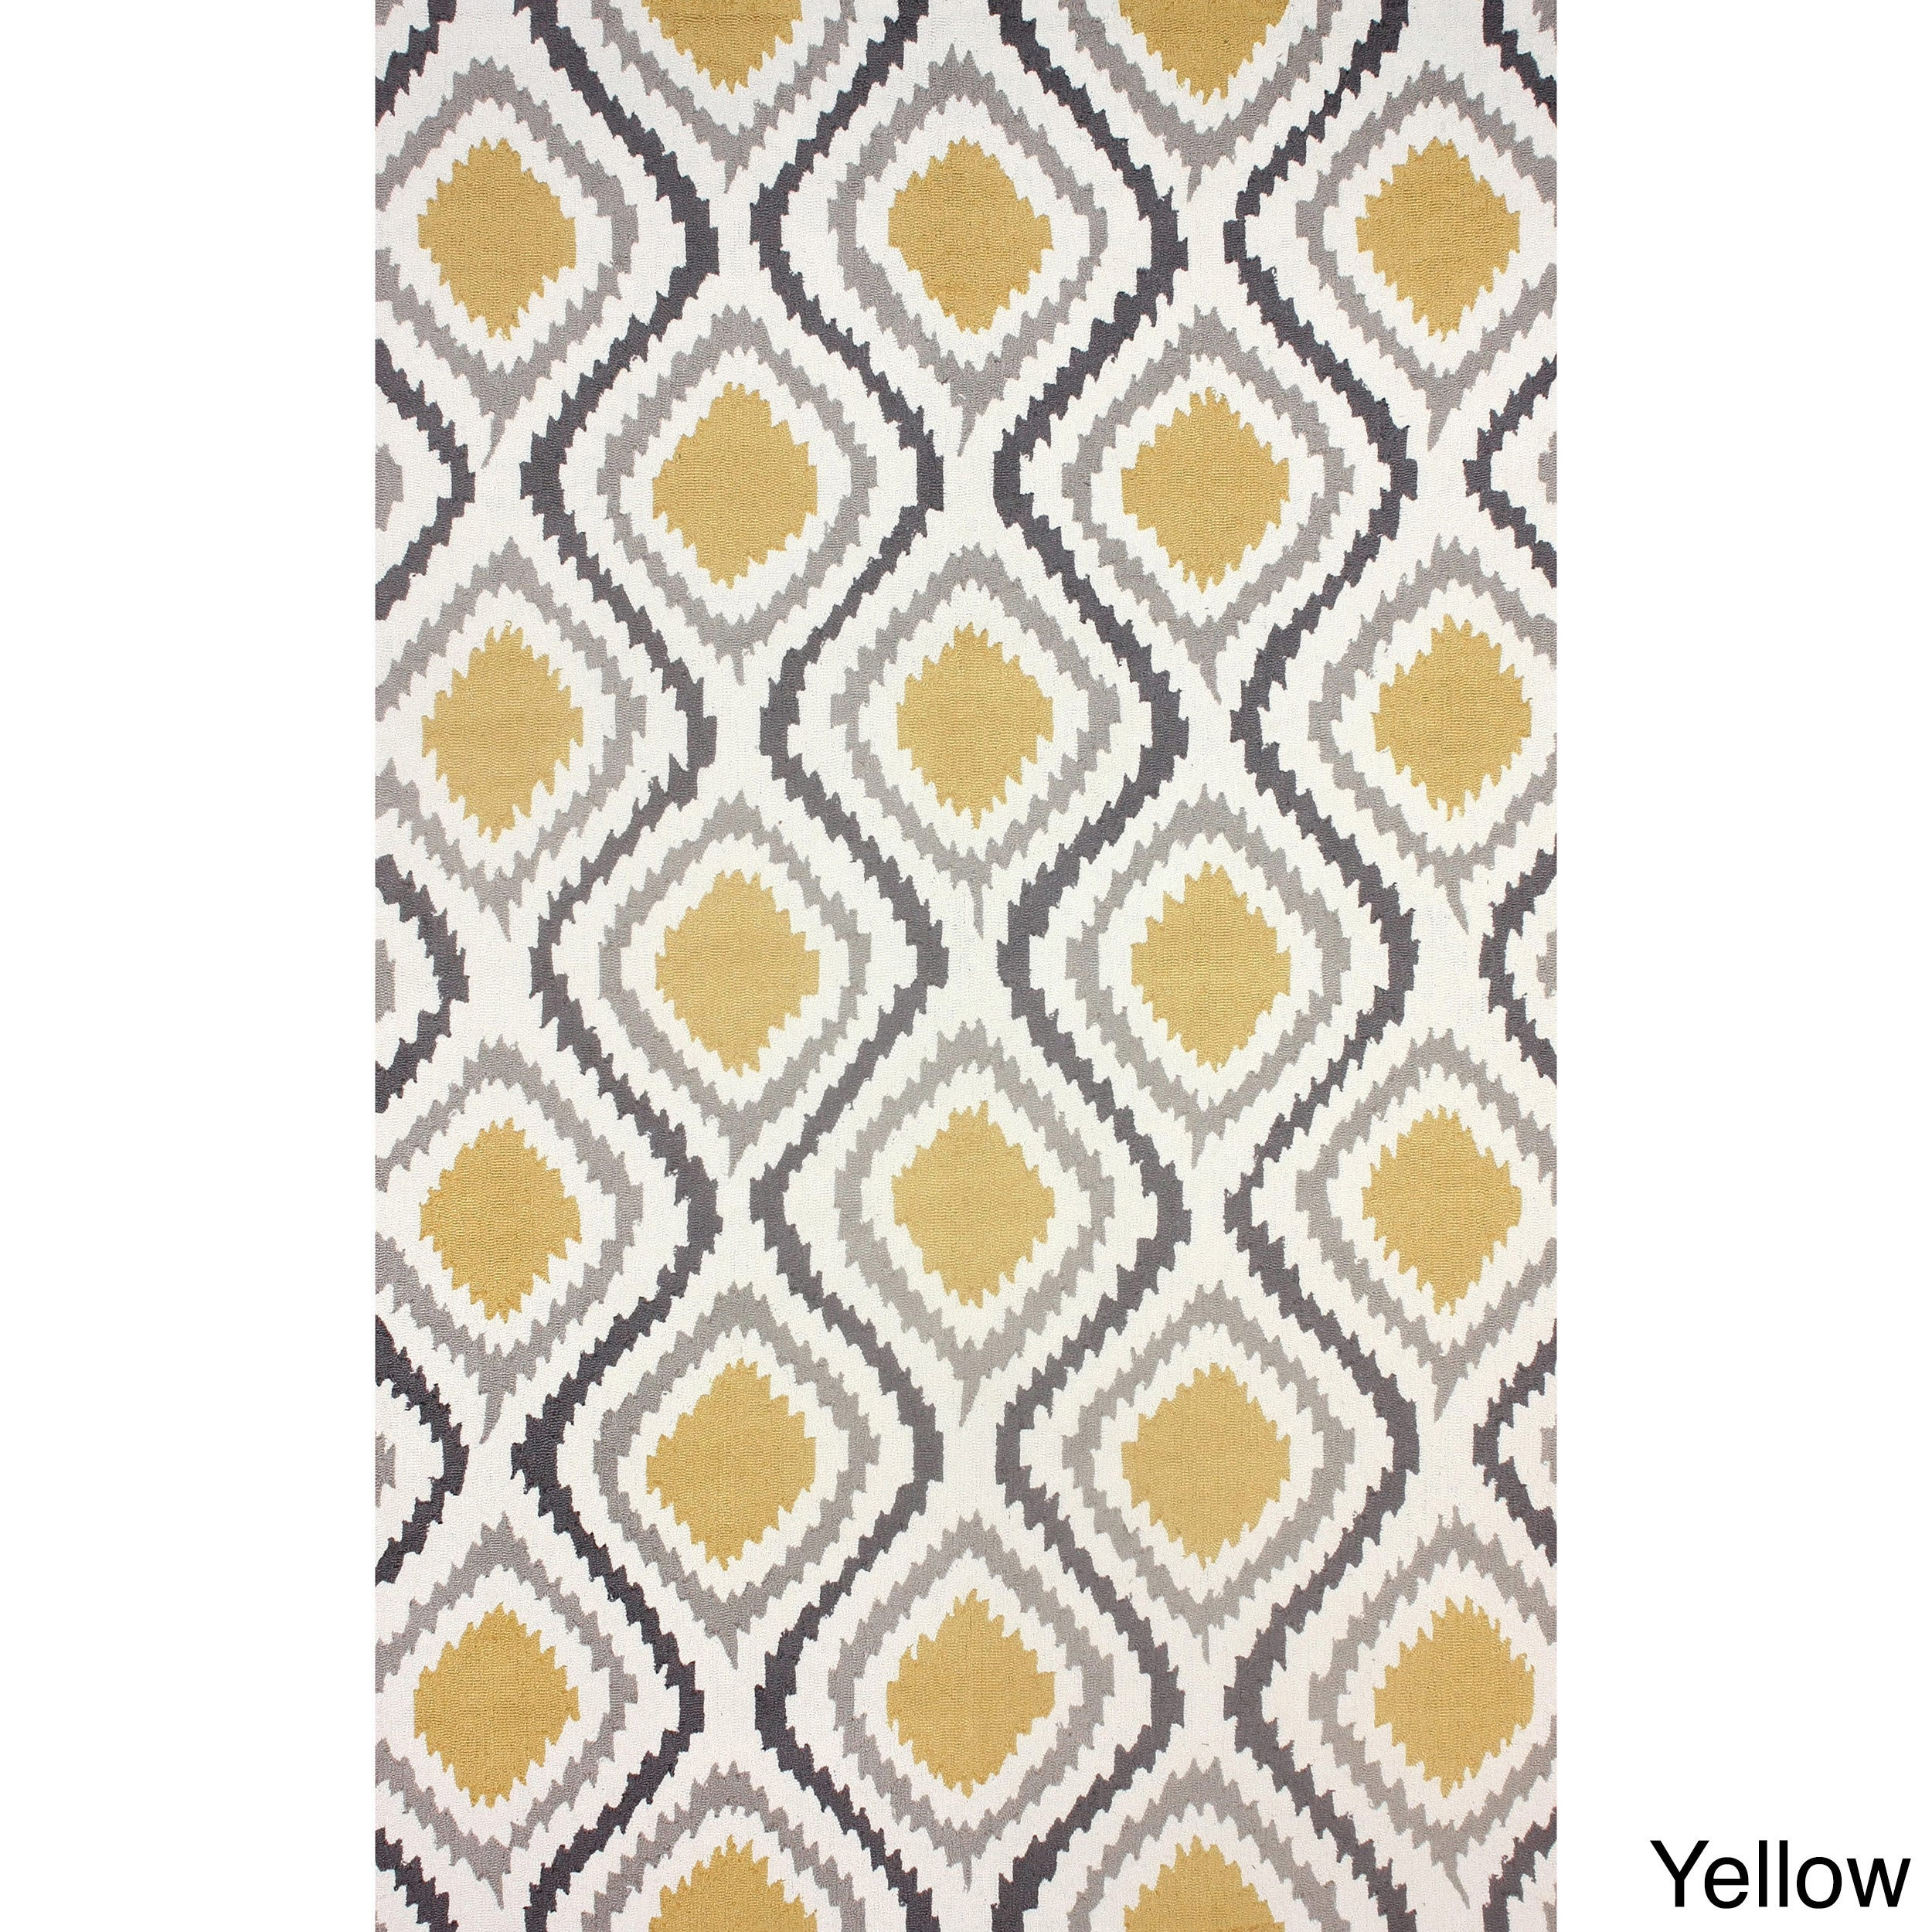 nuLOOM Hand-hooked Modern Ikat Rug (5' x 8') in Yellow (A...